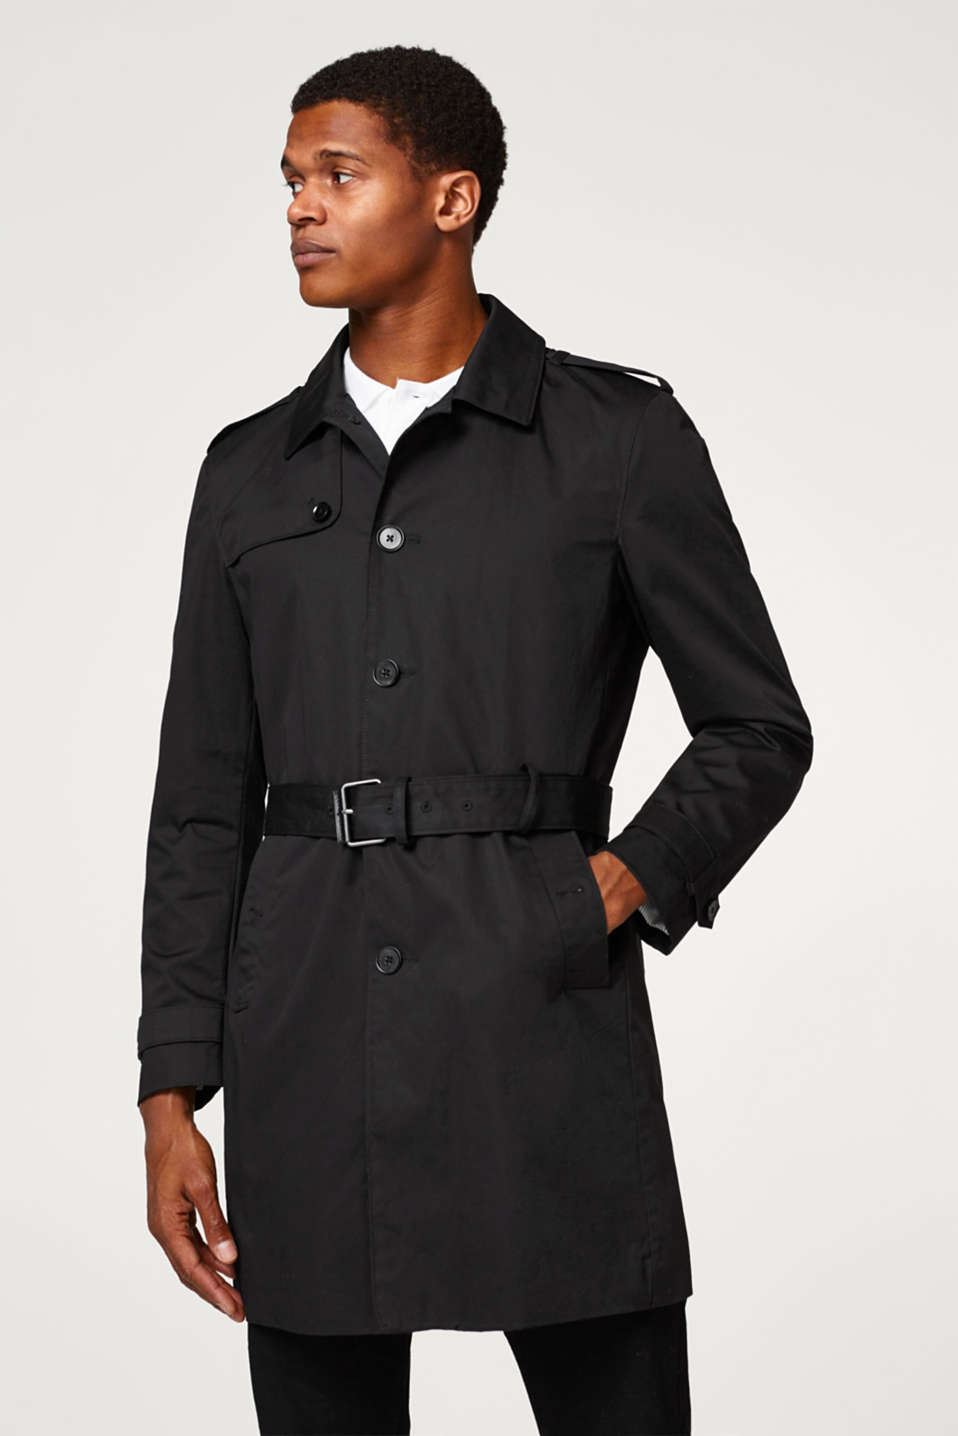 Esprit - Premium 100% cotton trench coat